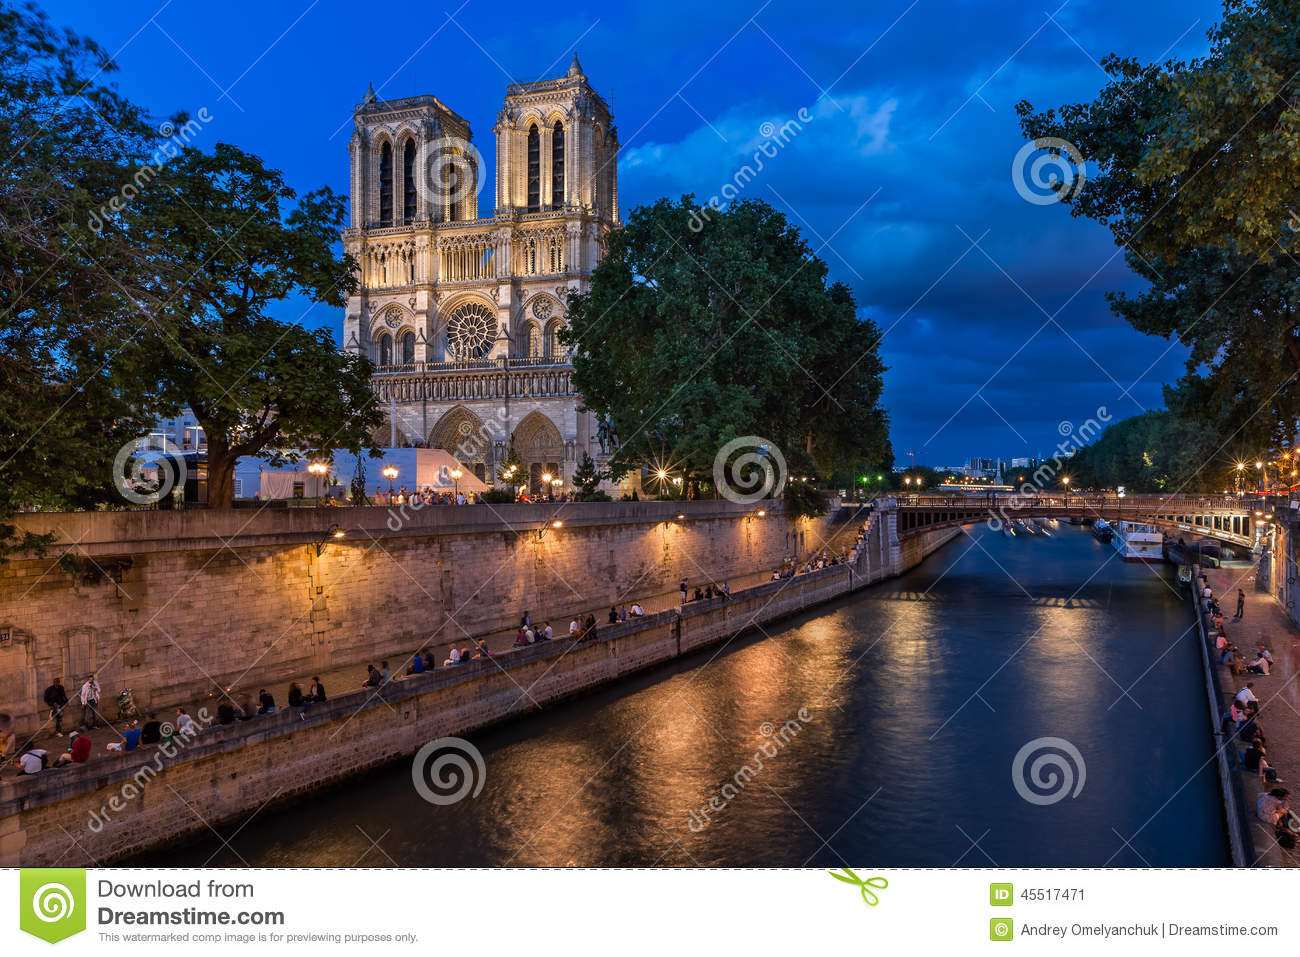 a description of the notre dame de paris a large cathedral church From gothic cathedrals to modern churches by contemporary architects, a big  part of french culture can be found in its religious structures on your  france's  most famous cathedral is the notre dame de paris, which was.